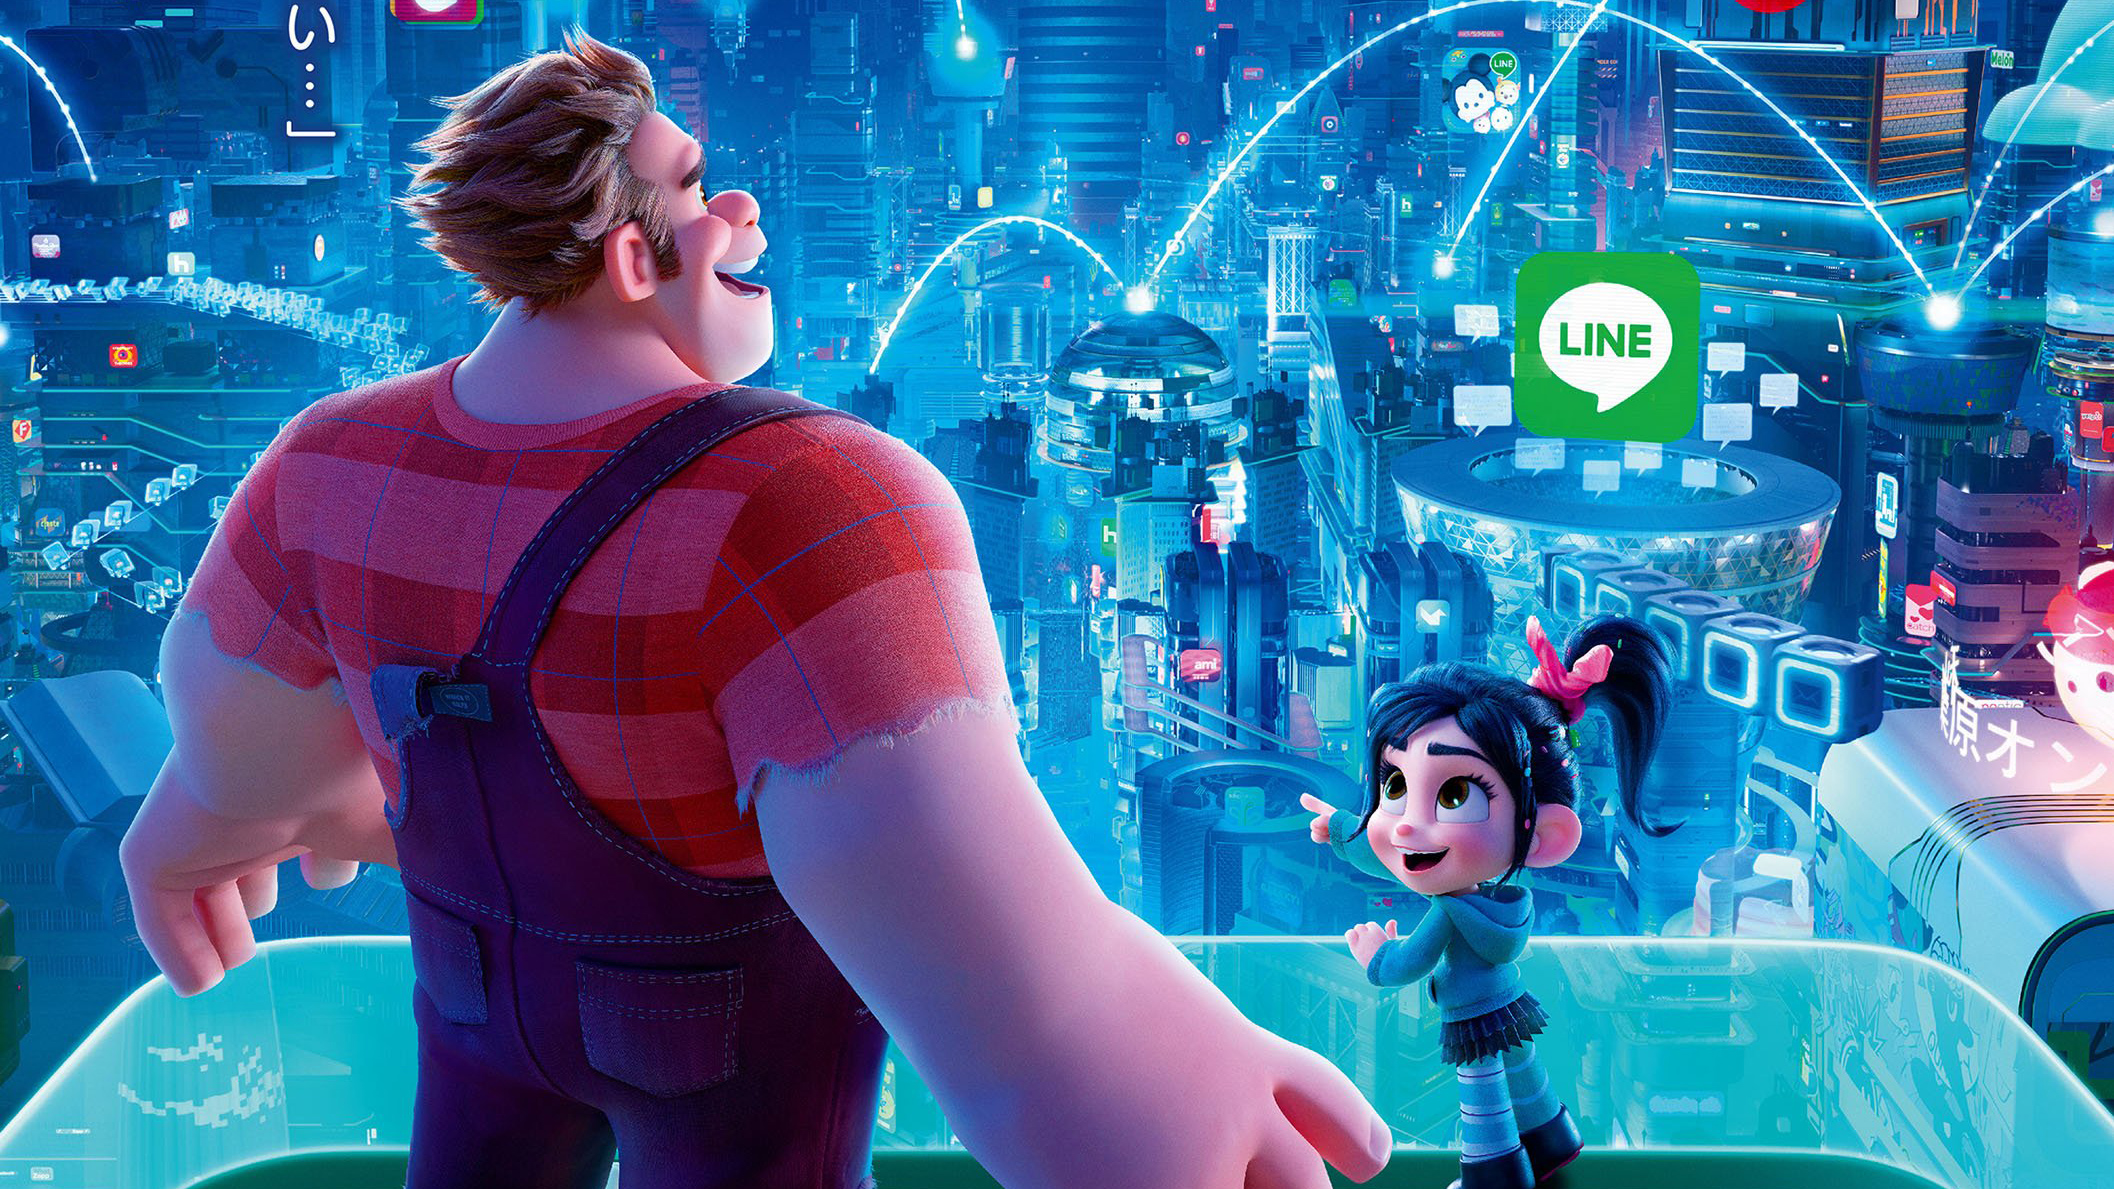 """Wreck it Ralph 2"" might be too similar to ""The Emoji Movie."" (Image via Hdqwalls)"